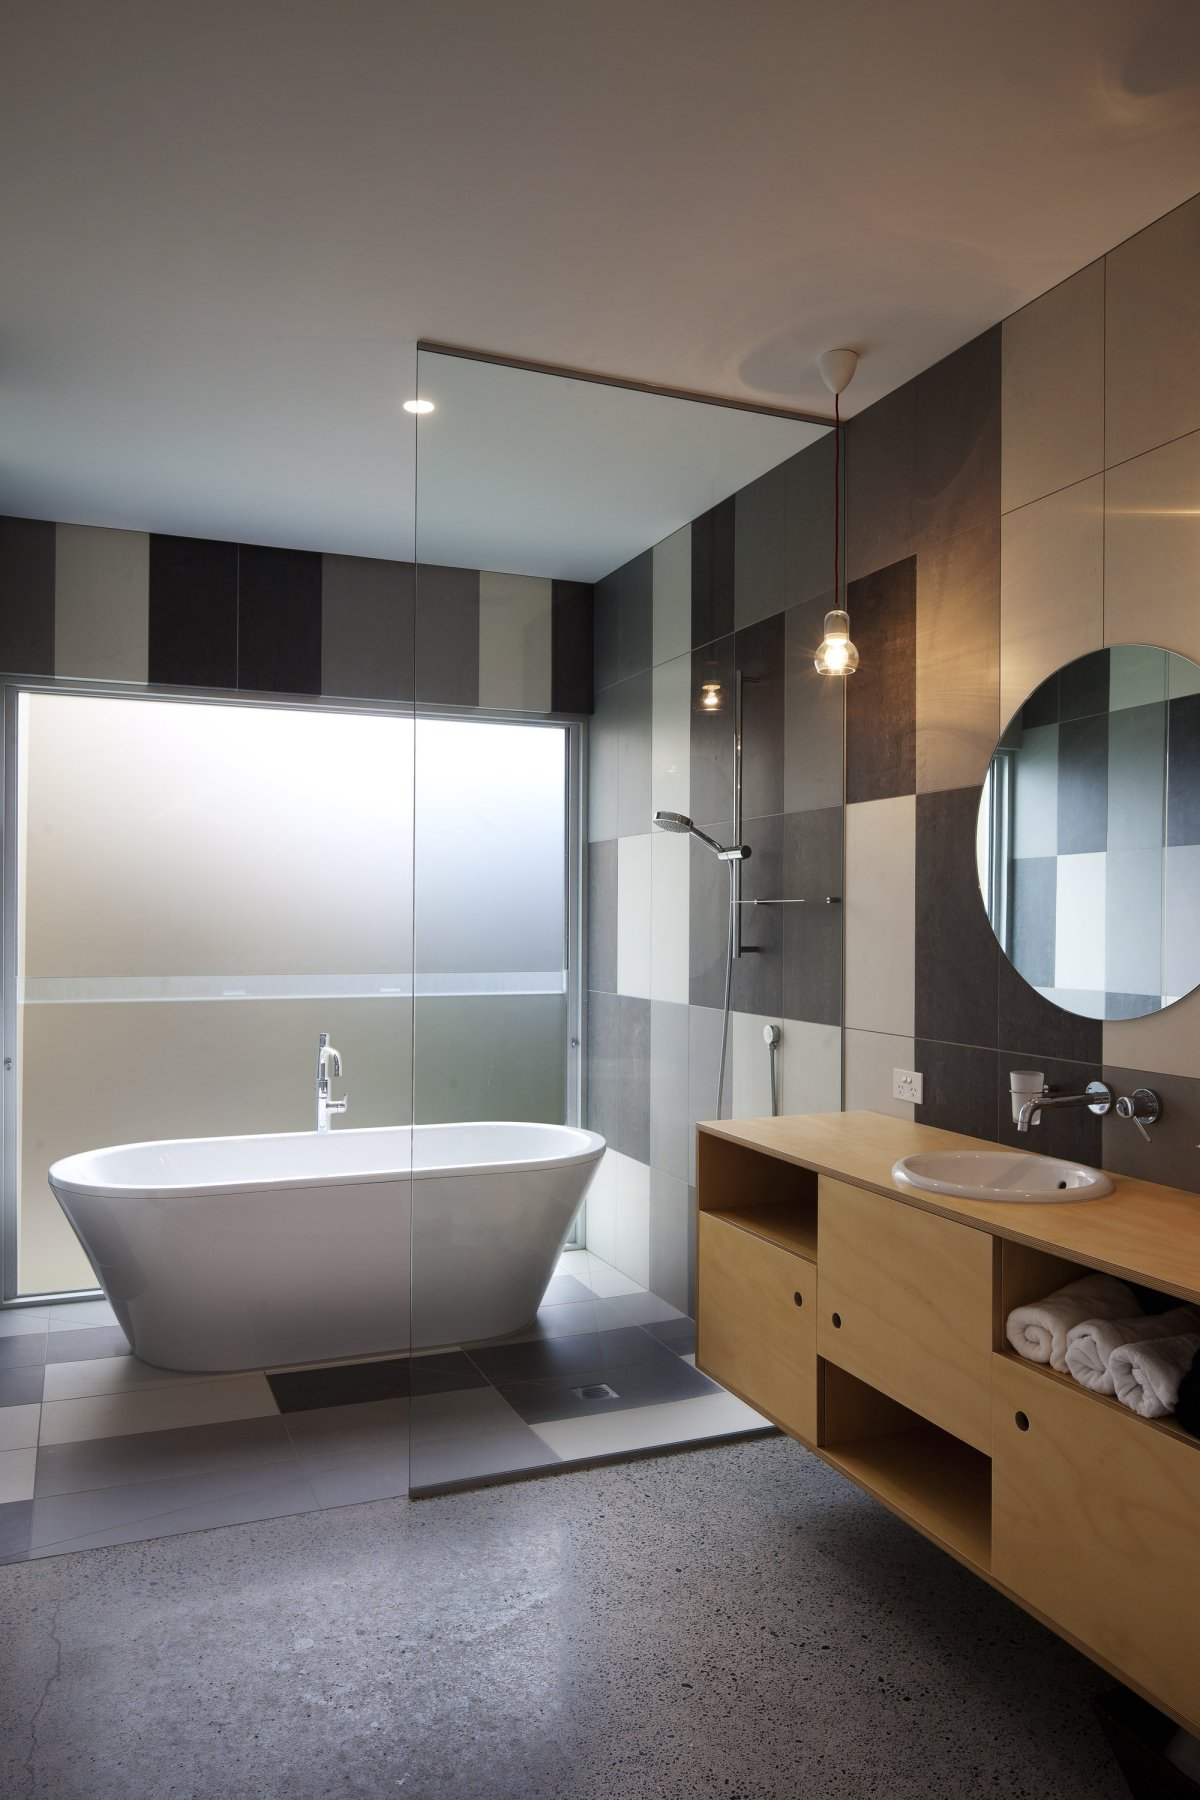 Glass Screen Bathroom 1950 60s Inspired Home In Auckland New Zealand